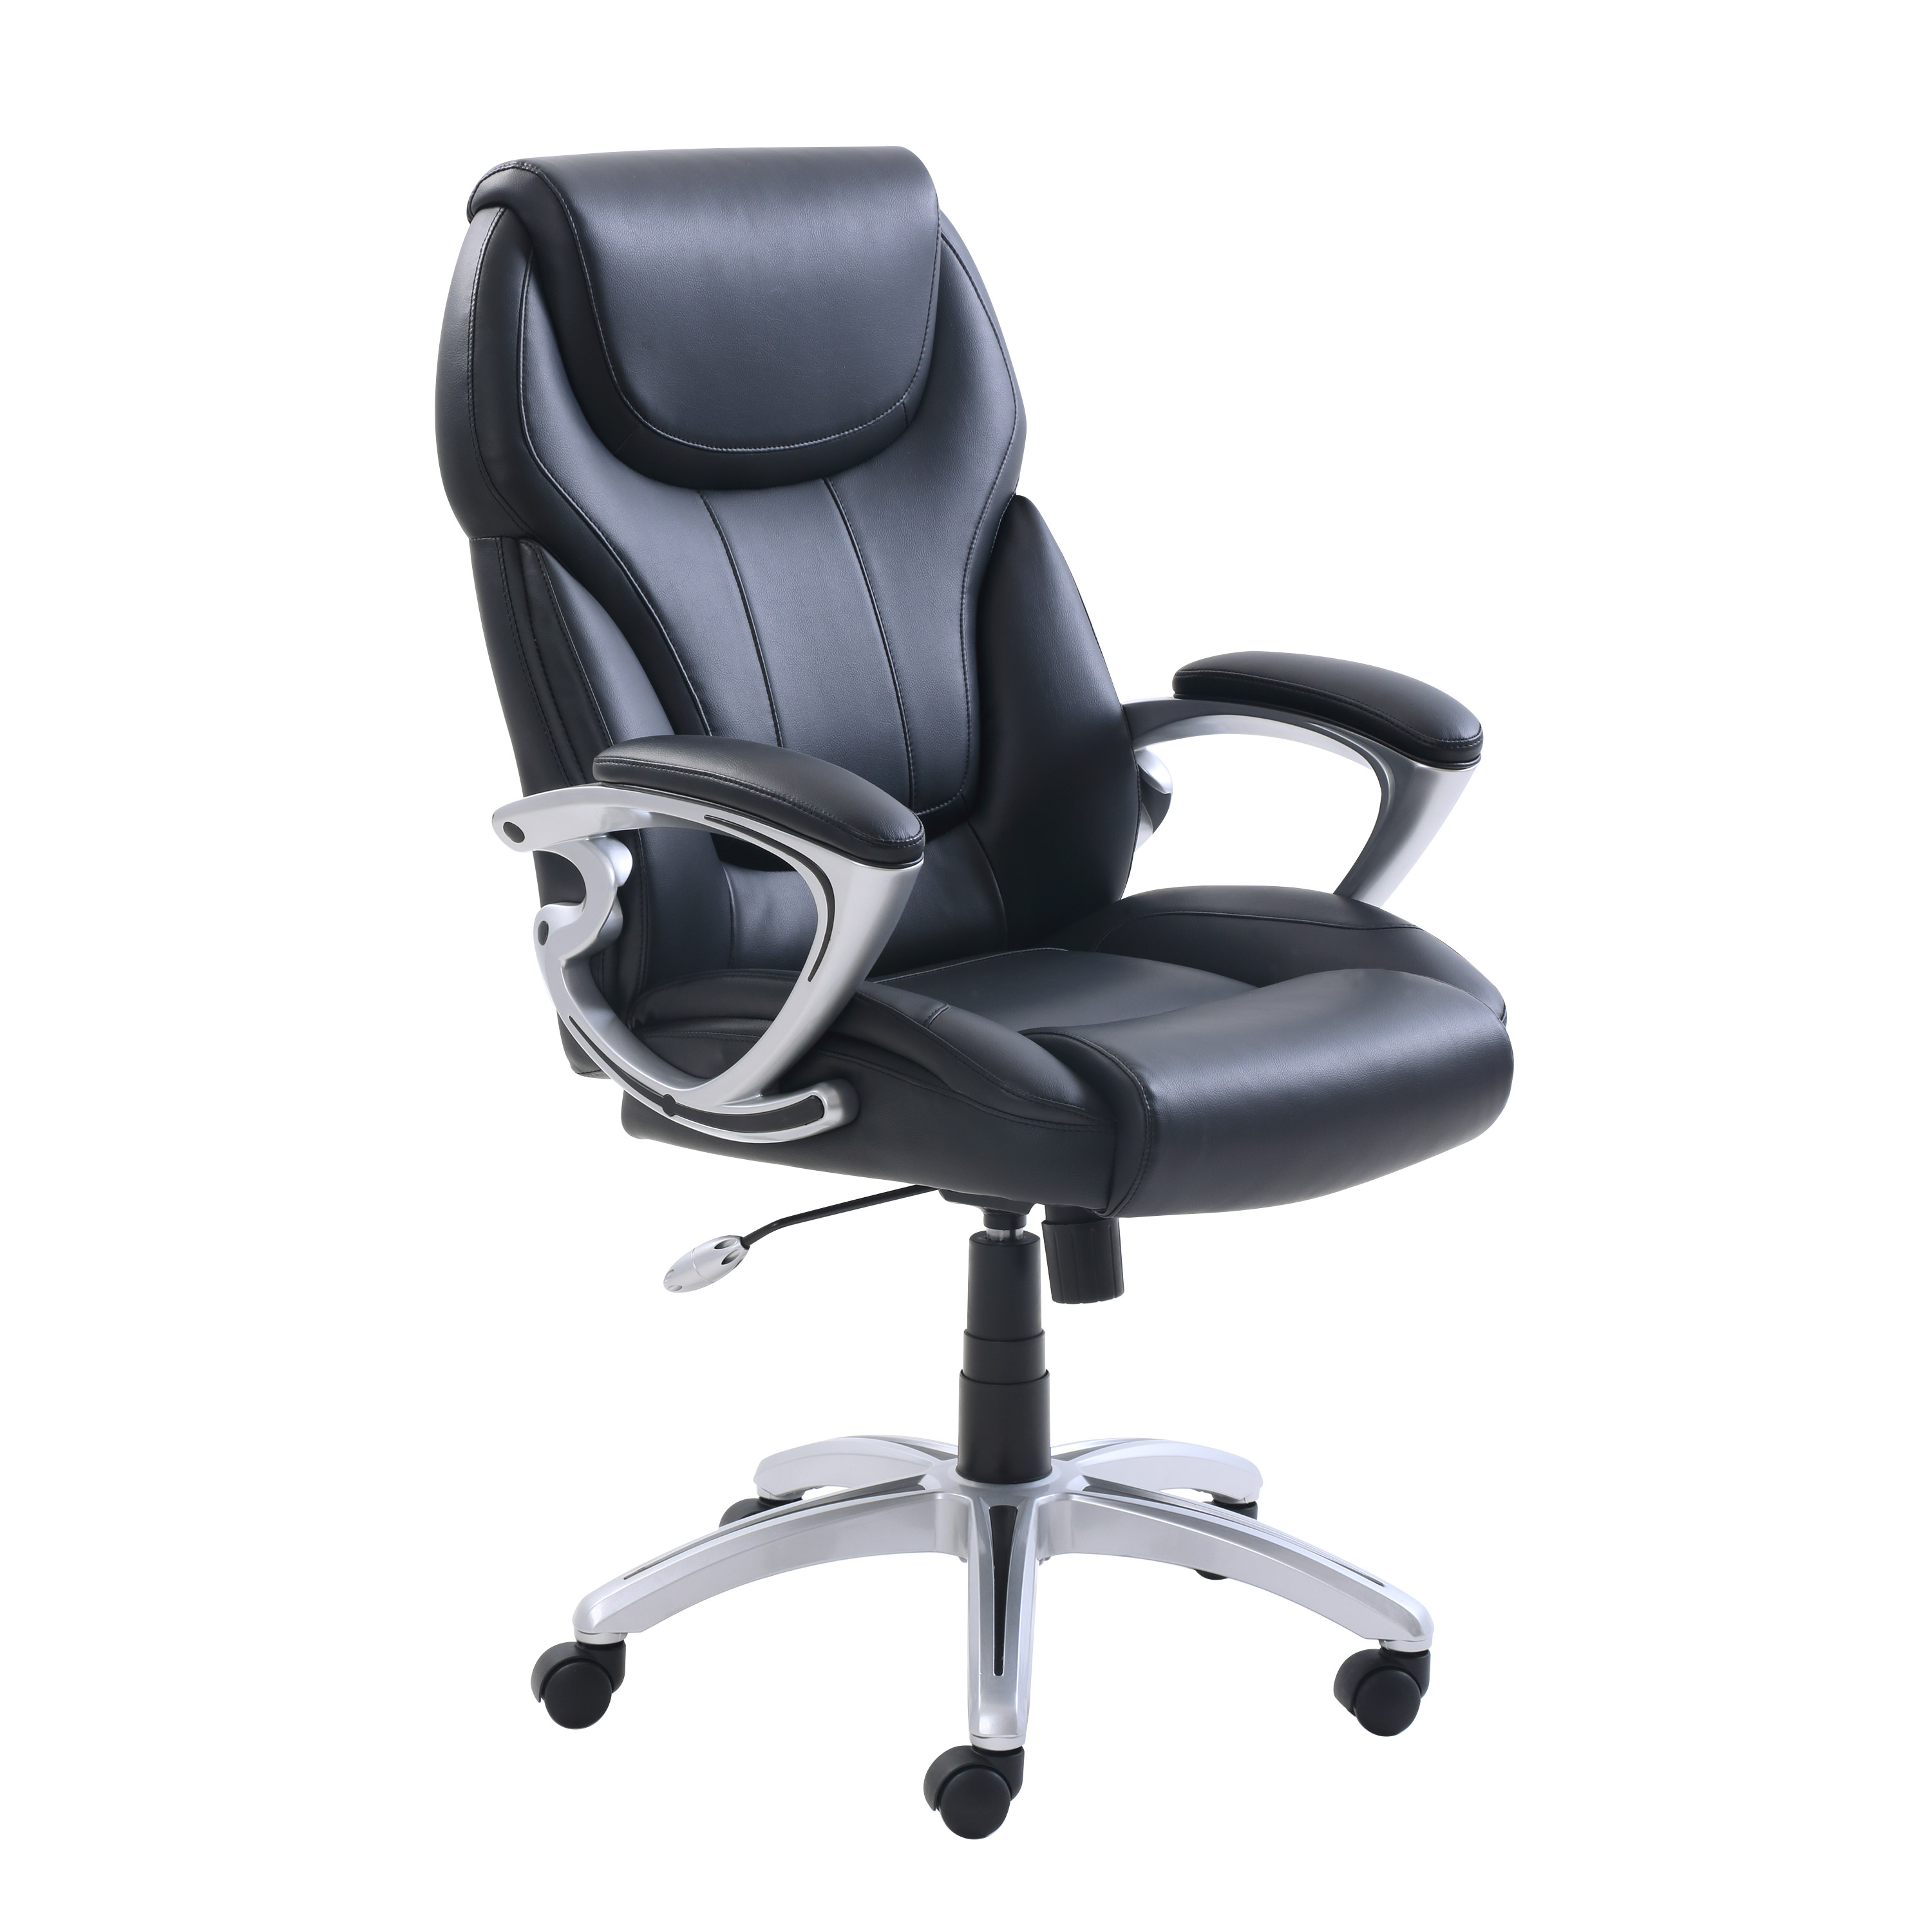 Marvelous True Innovations Bonded Leather Managers Chair Multiple Colors Walmart Com Cjindustries Chair Design For Home Cjindustriesco